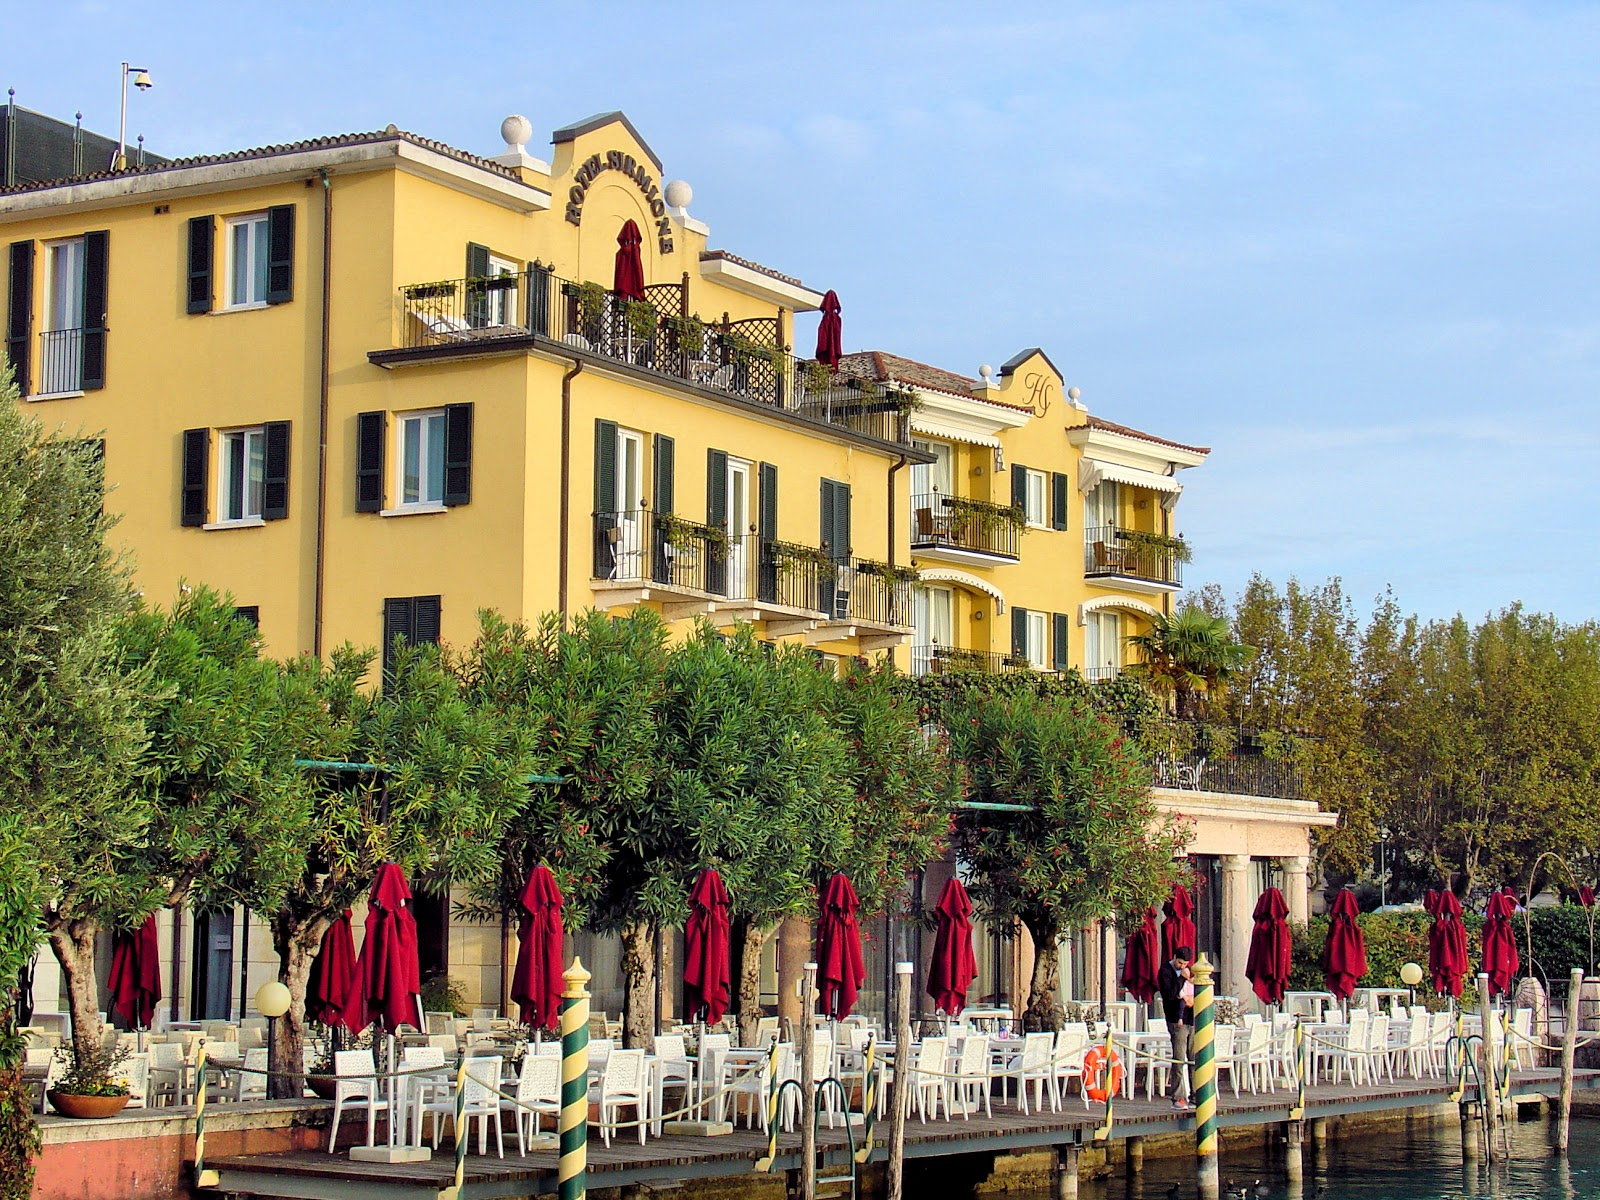 Scenes of Sirmione along the shores of Lake Garda.